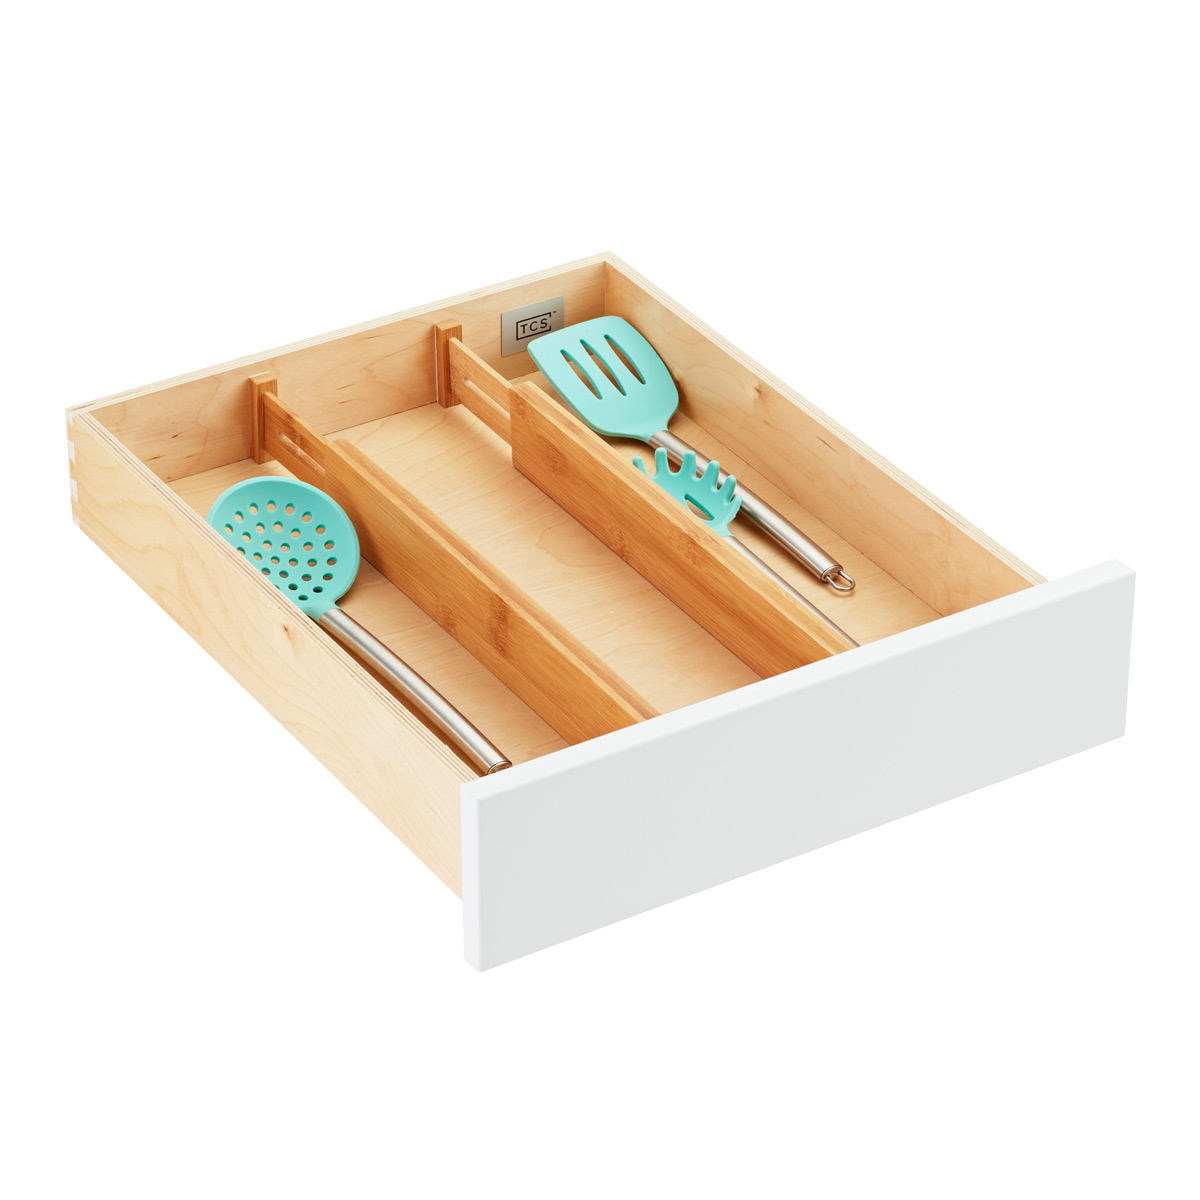 Bamboo Drawer Organizers